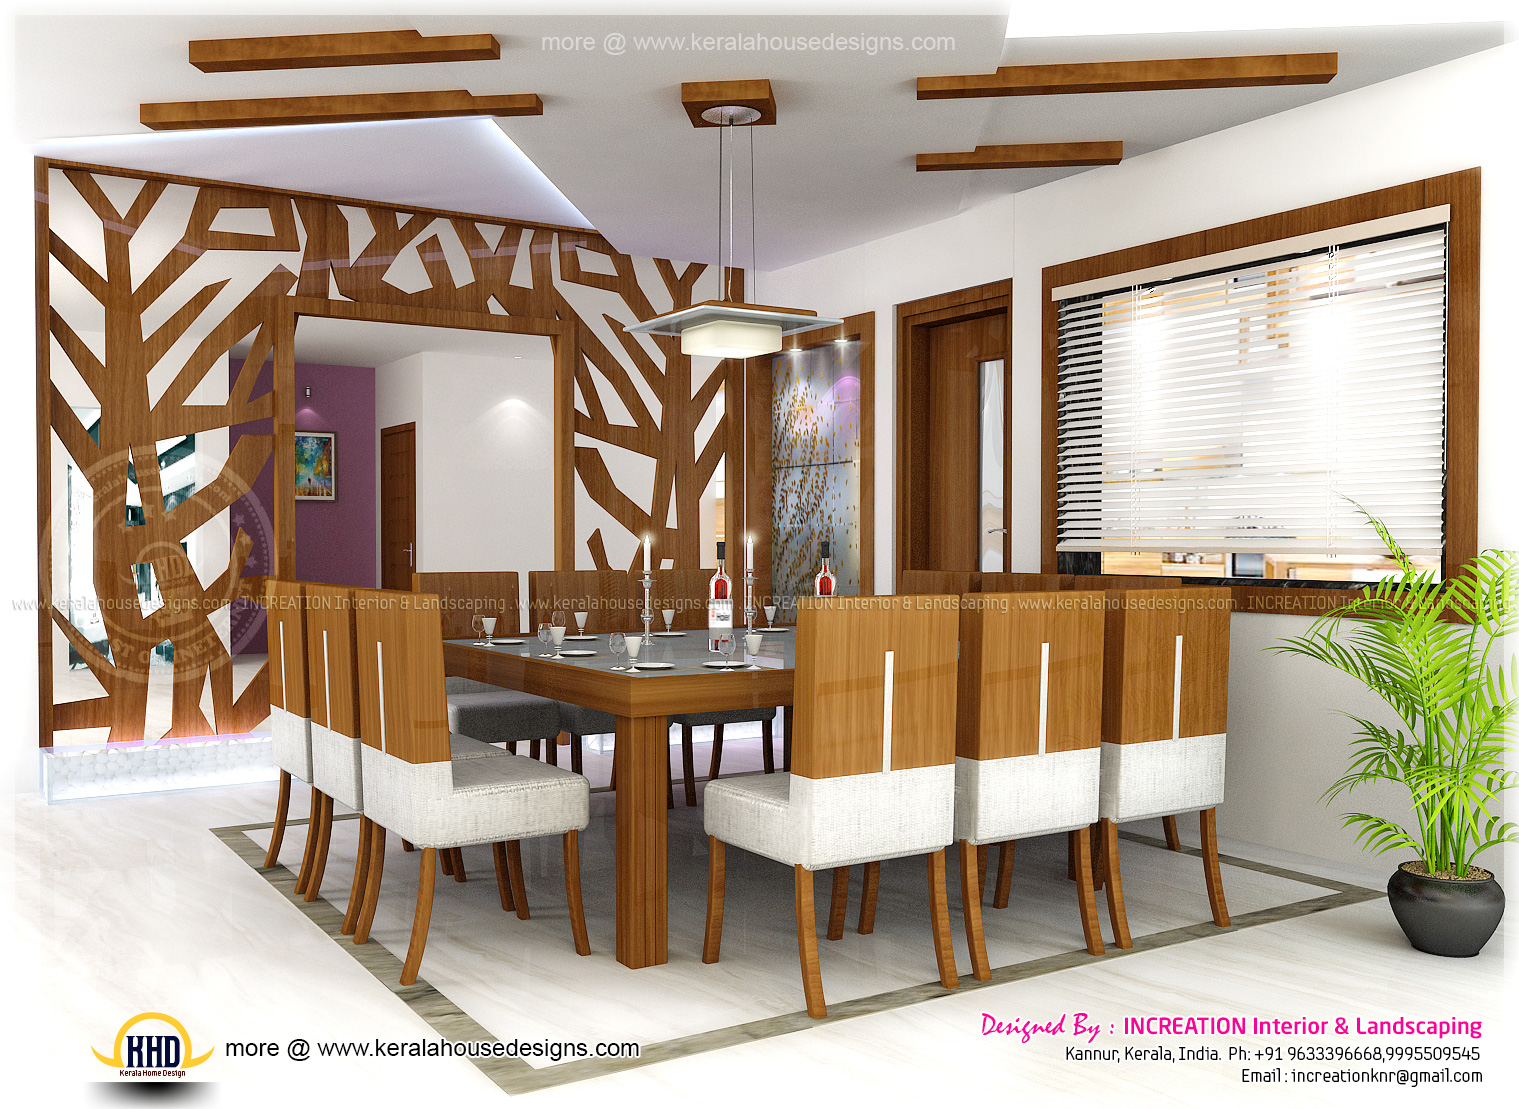 Interior designs from kannur kerala home kerala plans for New home design ideas kerala